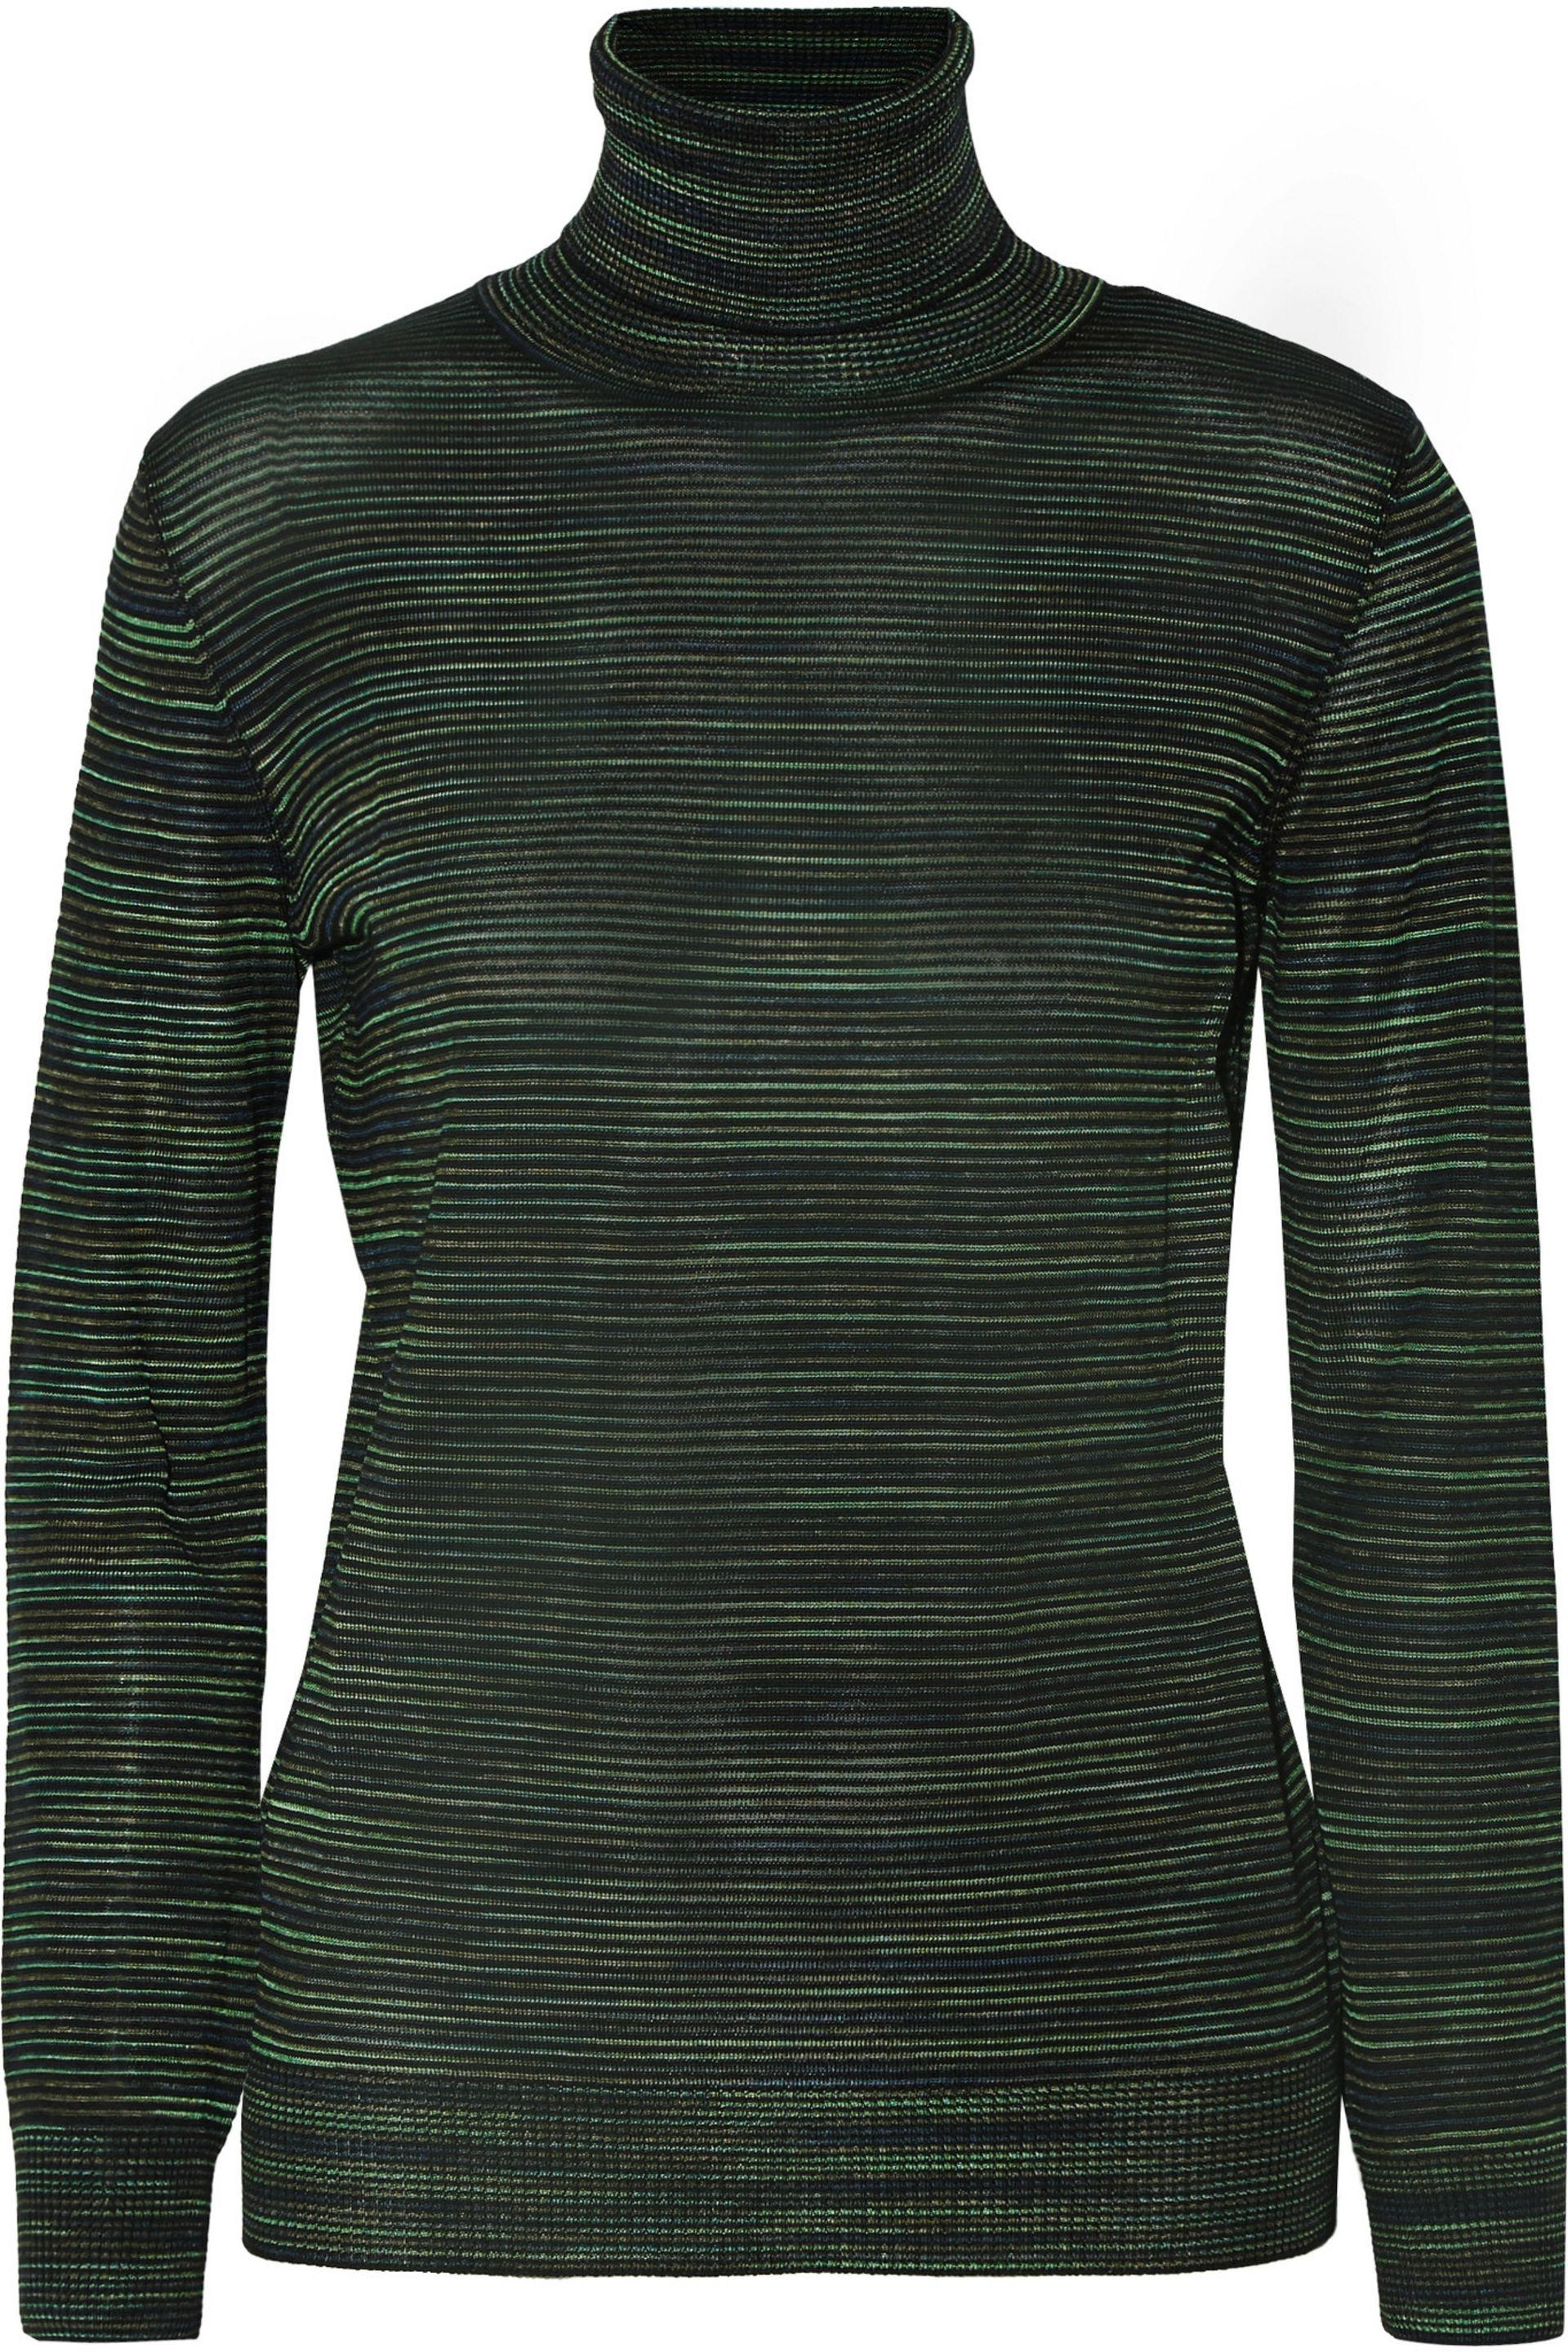 M missoni Striped Wool-blend Turtleneck Sweater Forest Green in ...